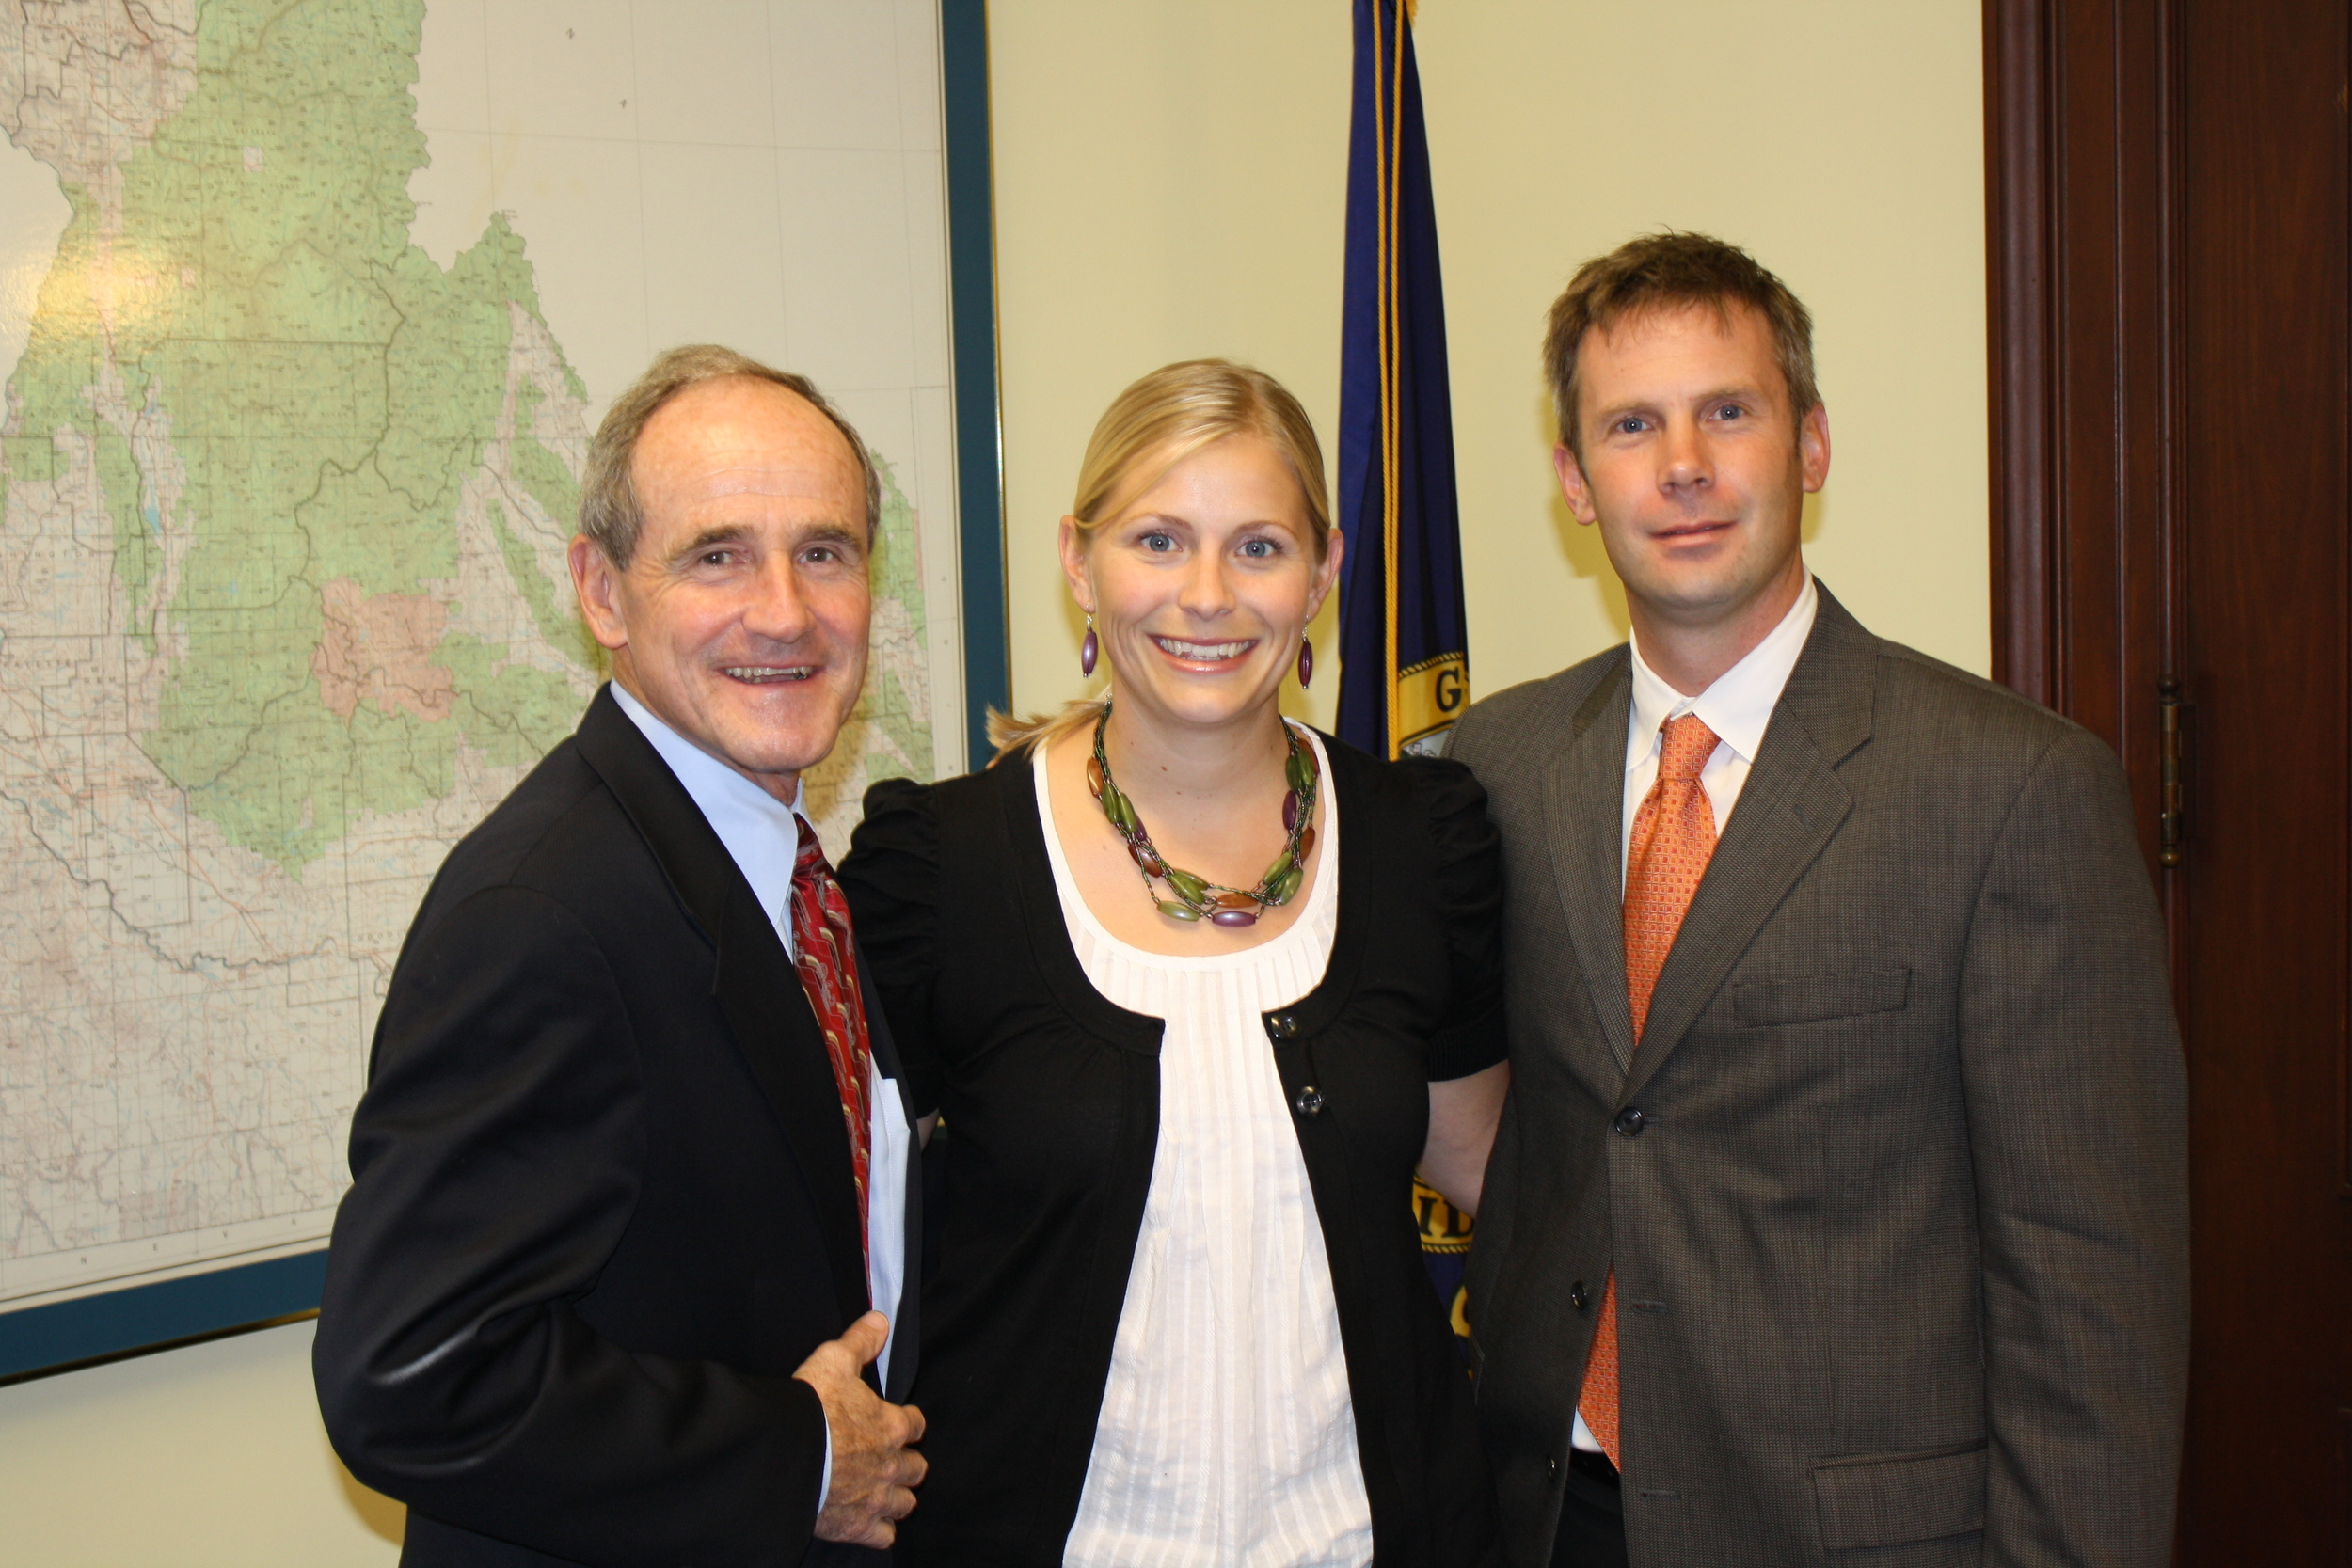 U.S. Sen. Jim Risch, R-Idaho, Stanley Mayor Hannah Stauts and IRU's Greg Stahl pause for a photo after talking about endangered salmon issues last week in Washington, D.C.